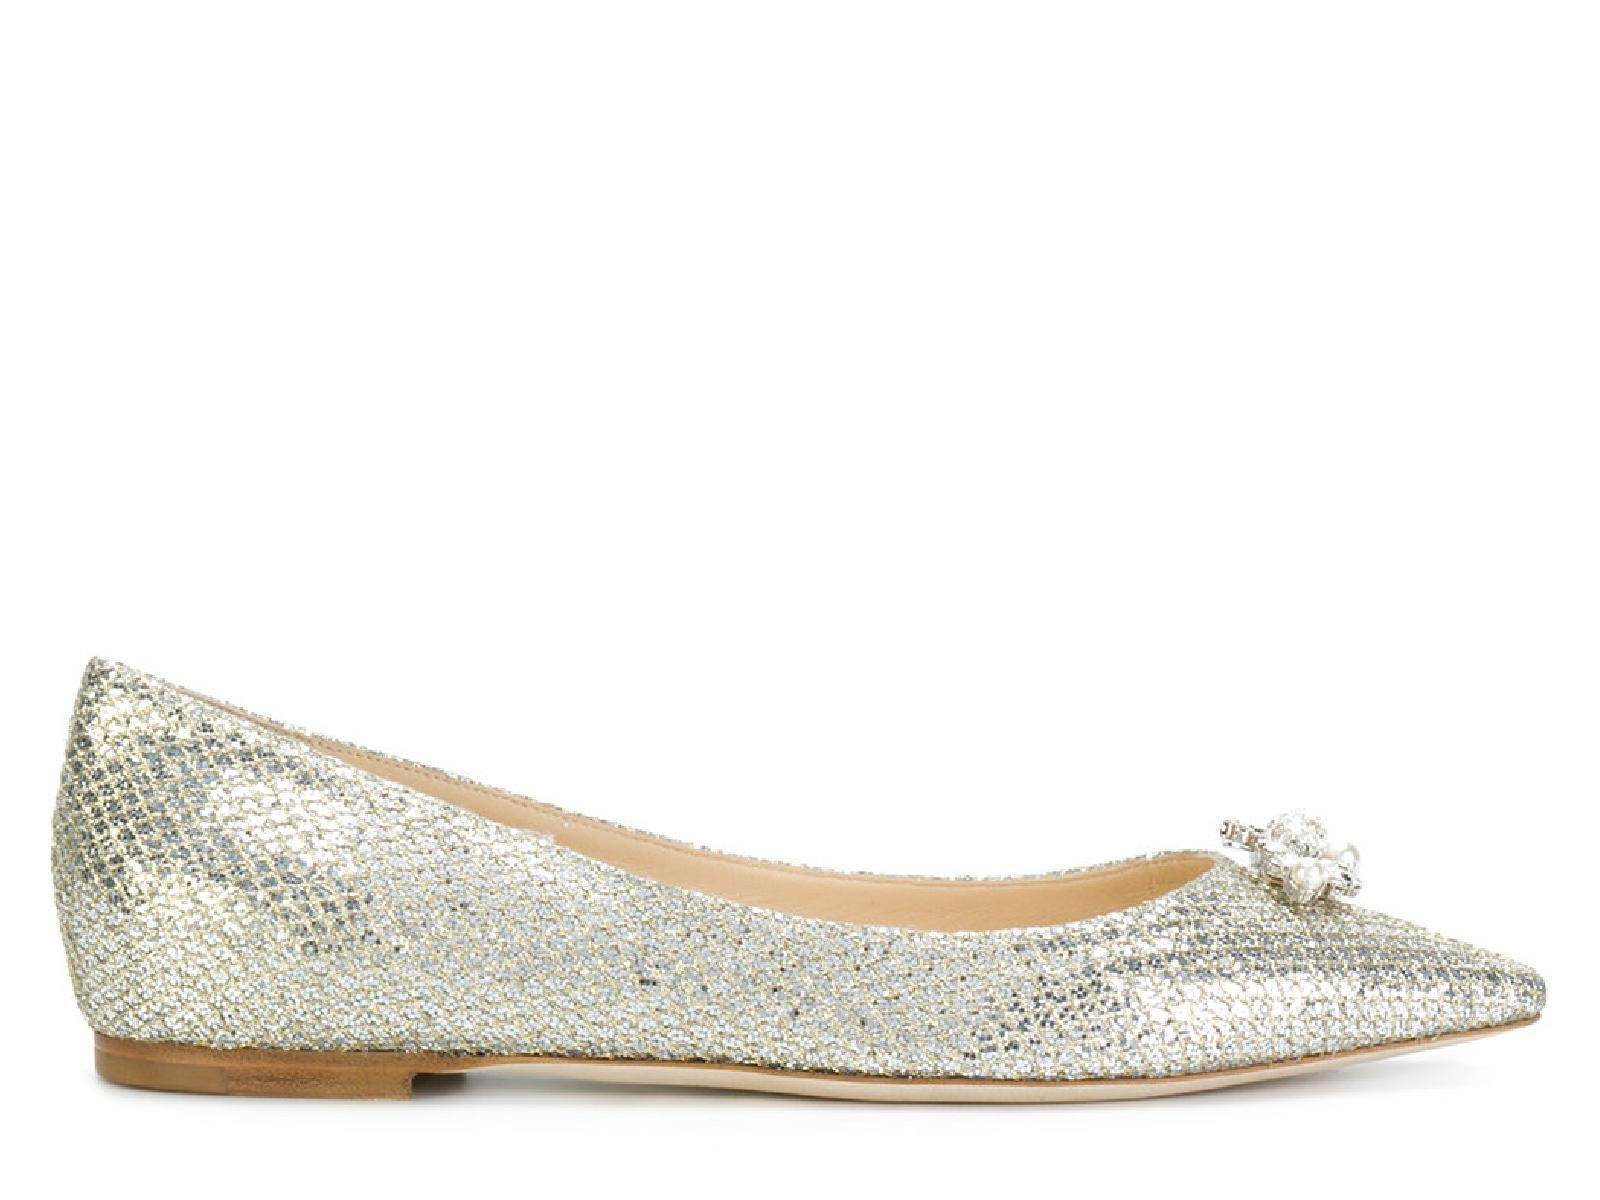 b374aa770d91 ... usa jimmy choo pointed toe ballerina in champagne leather flats eba1d  cc6e2